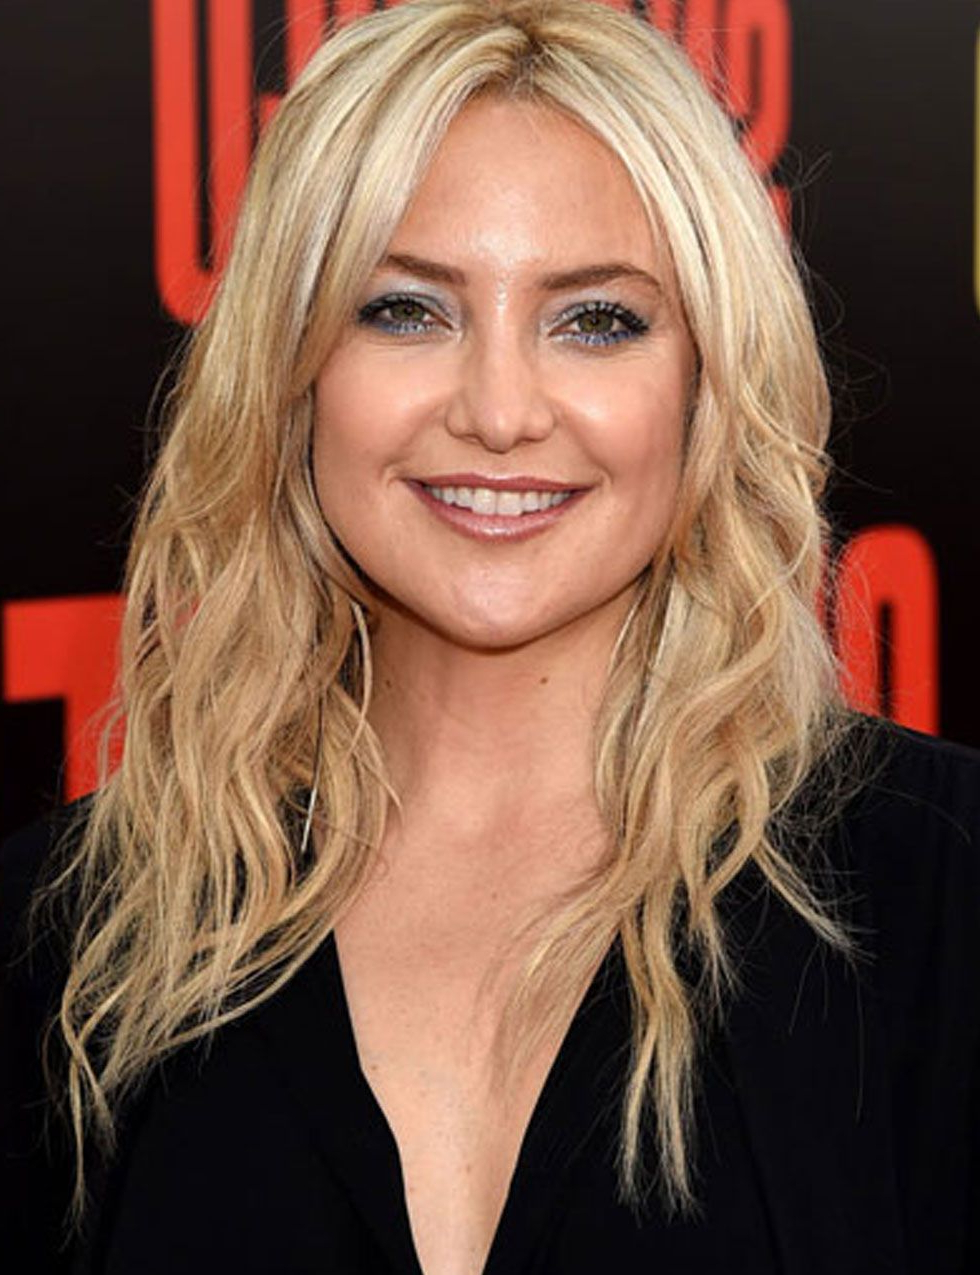 Best Hairstyles For Fine Hair – 18 Celebs With Fine Hair Inside The Finest Haircuts For Fine Hair (View 6 of 20)